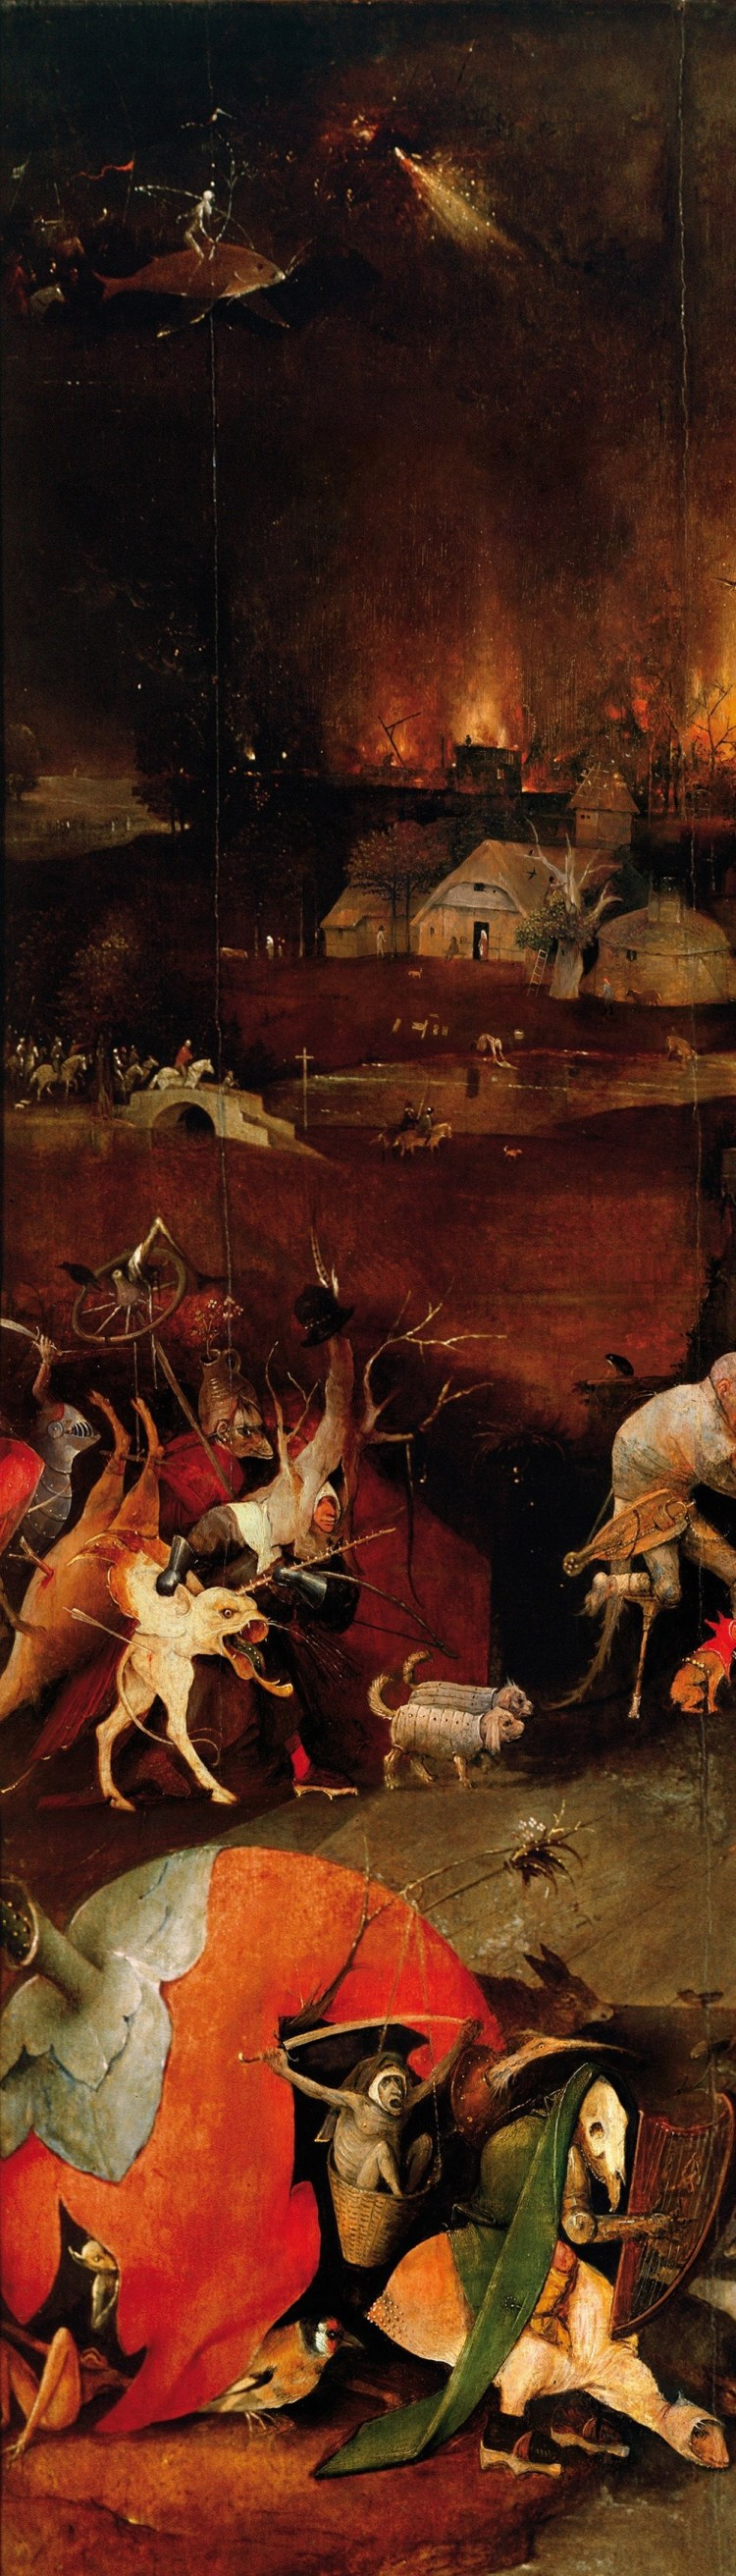 Hieronymus Bosch, The Temptation of St Anthony, detail 9